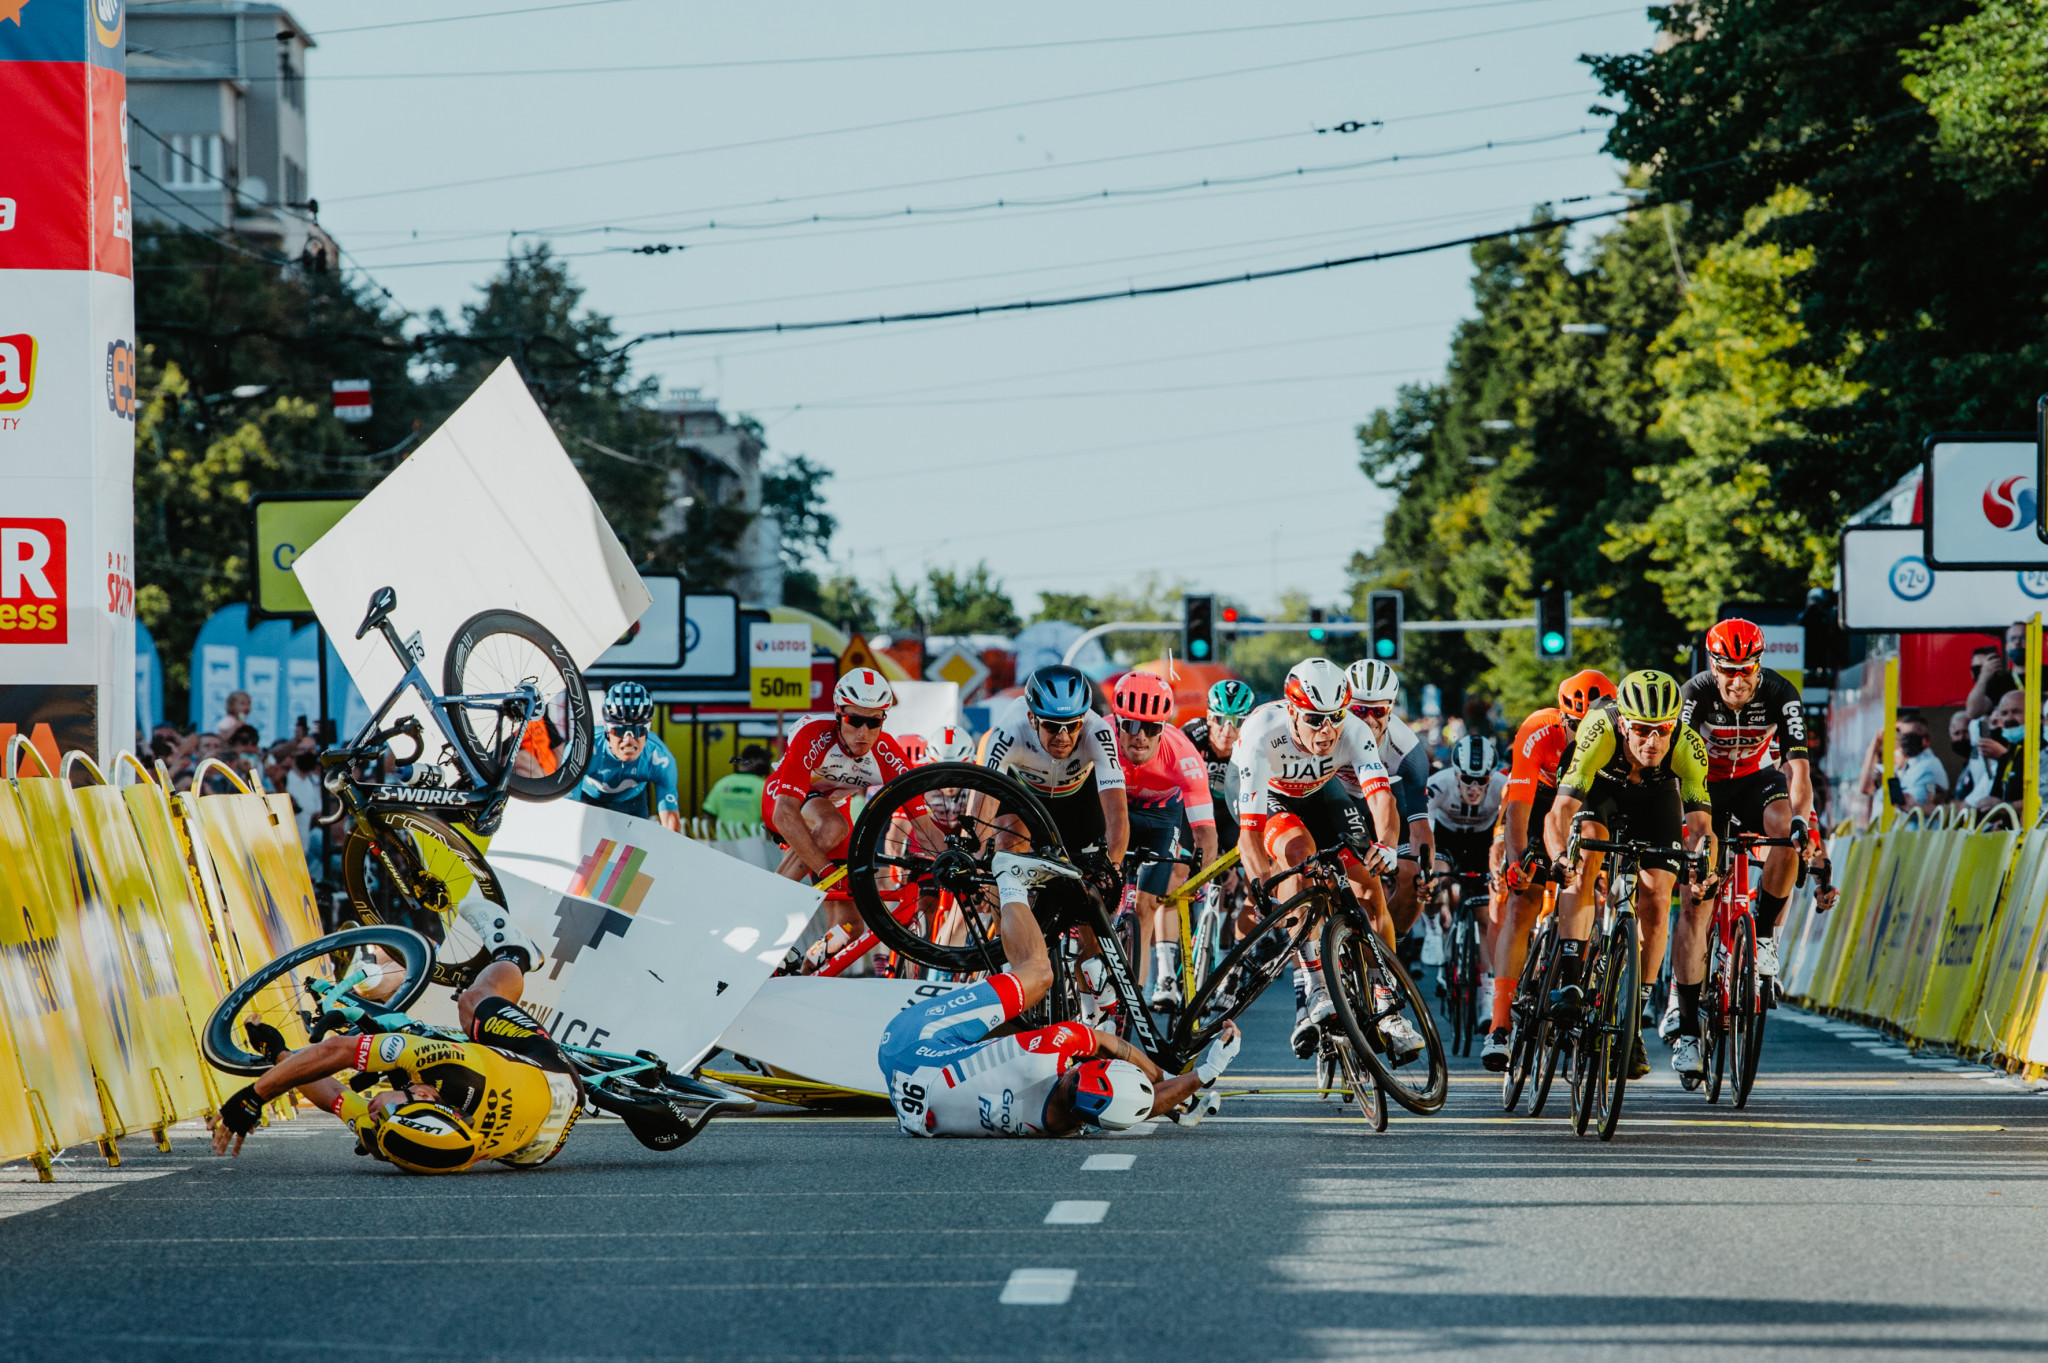 Fabio Jakobsen's crash at the Tour of Poland has led to an increased focus on rider safety ©Getty Images